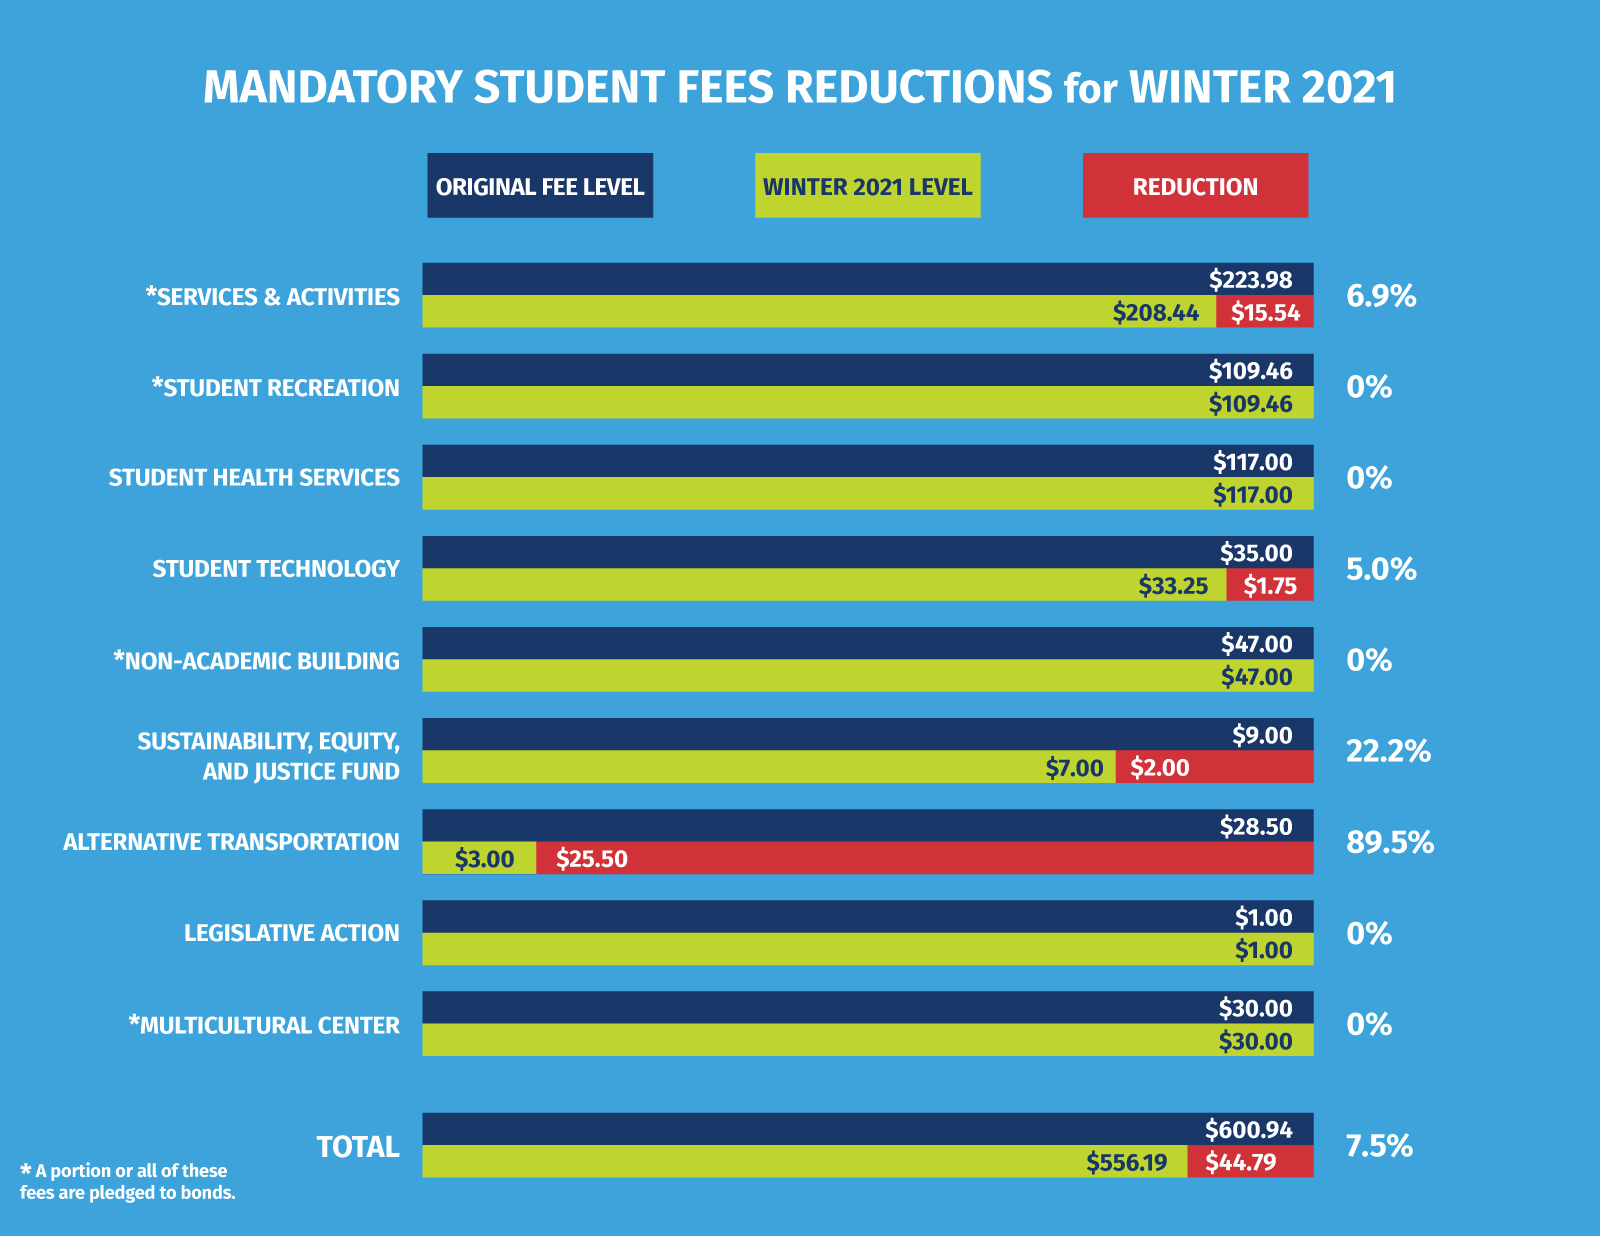 graphic of mandatory student fee reductions for winter 2021